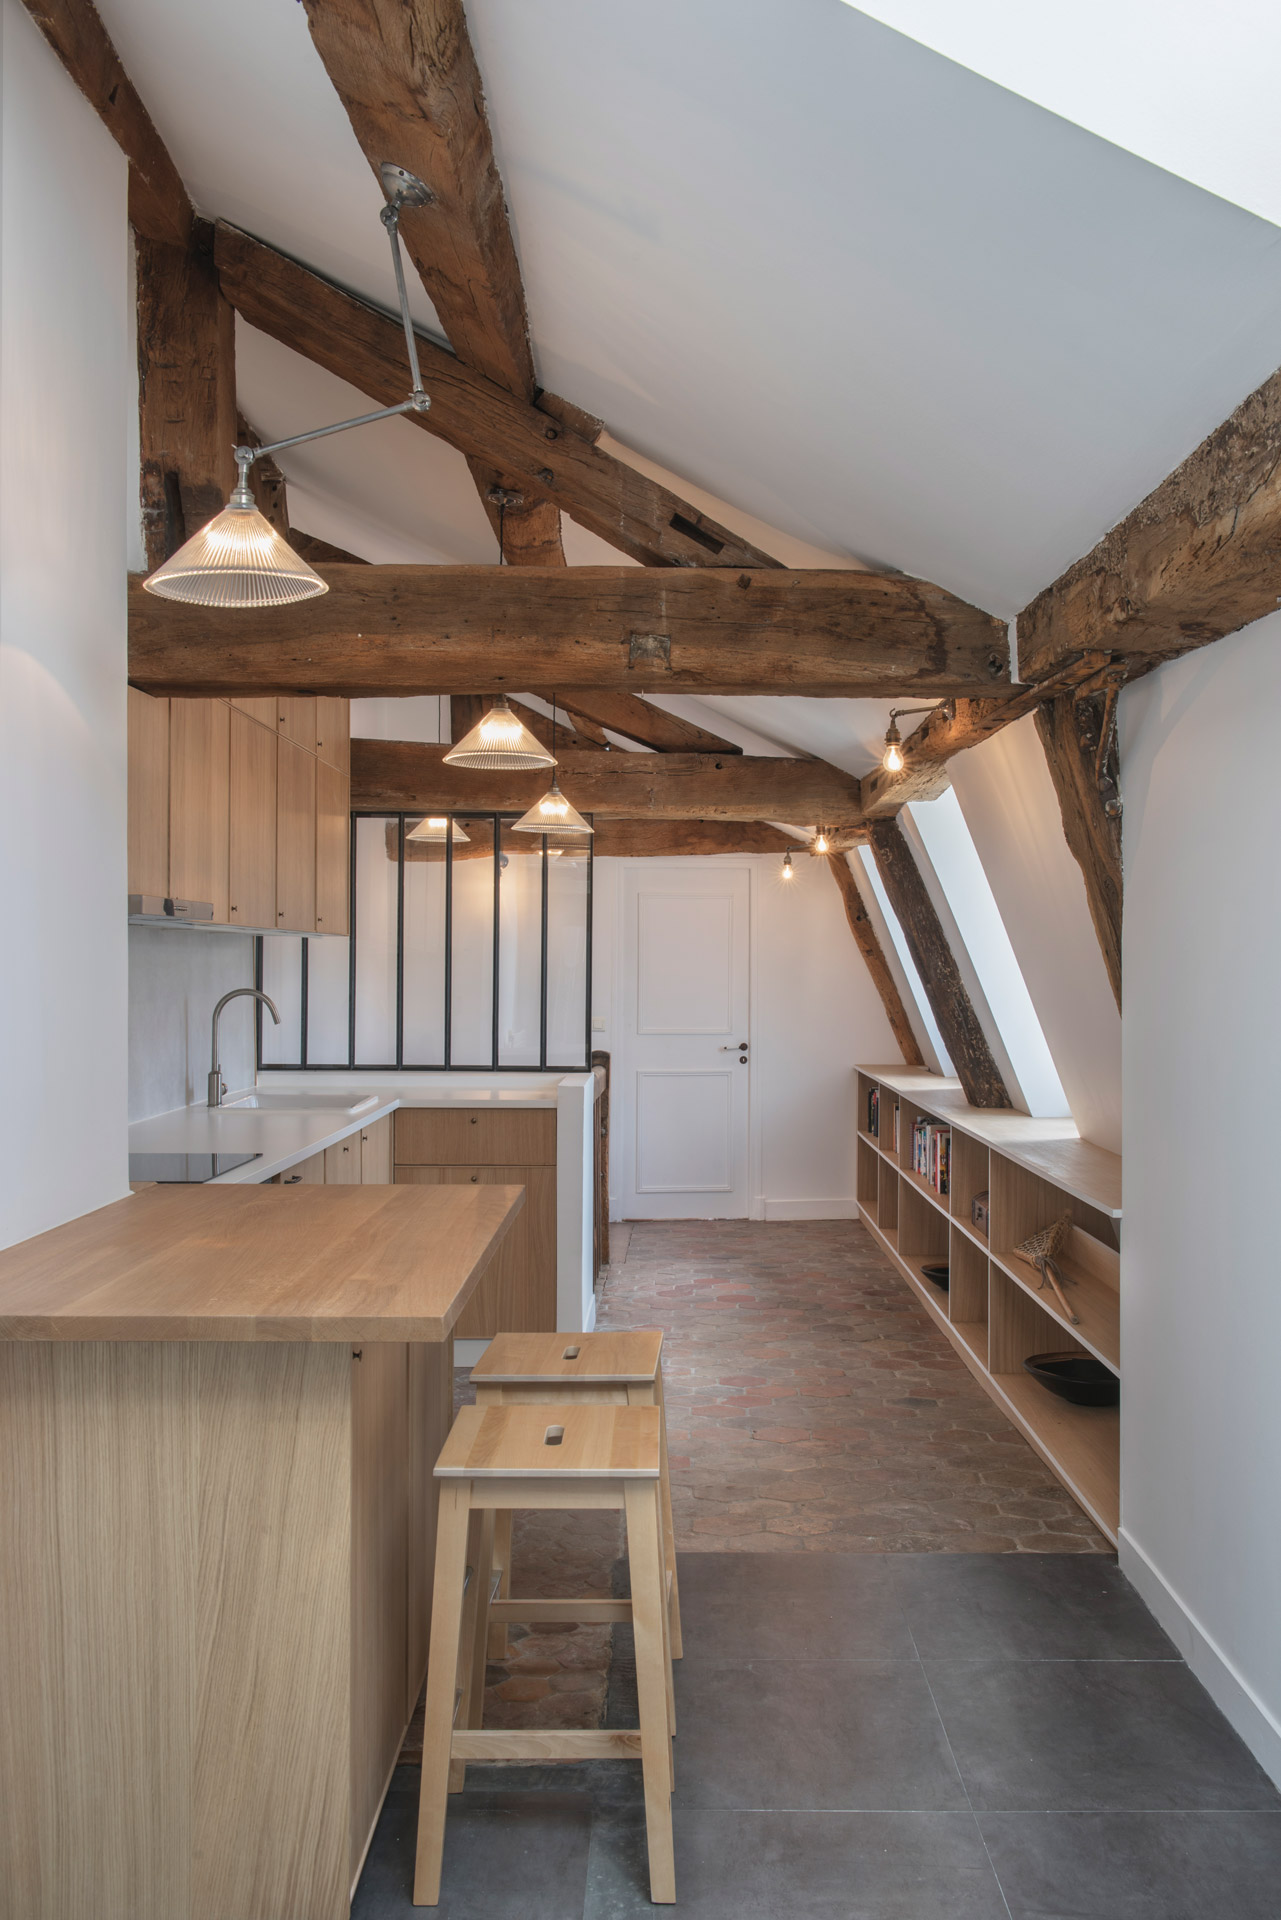 Prismatic glass shades help bring this rustic Parisian apartment to life